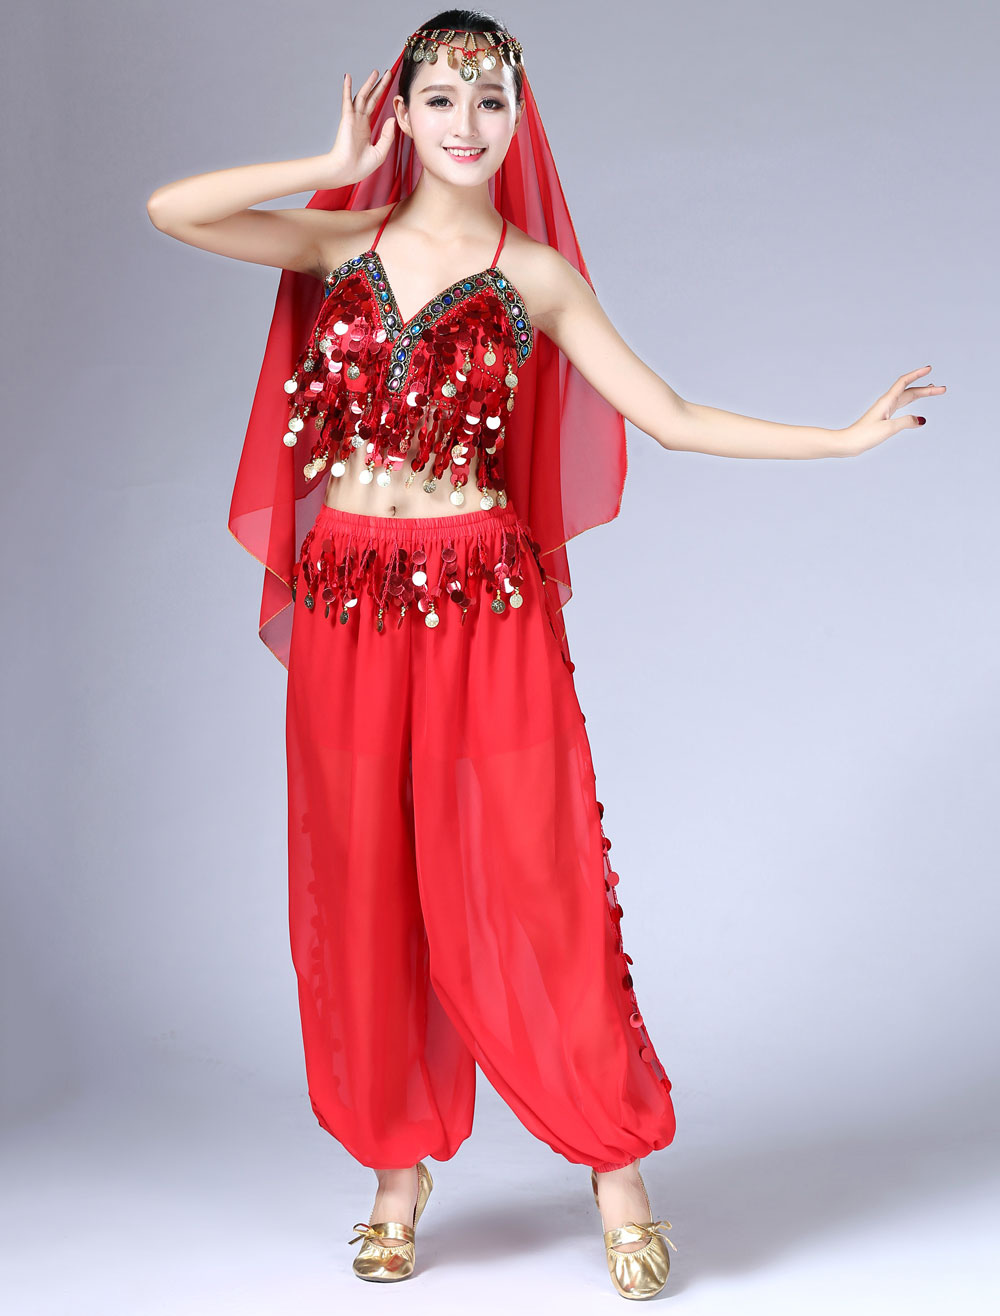 Belly Dance Costume Chiffon Red Women's Pants With Top And Headband